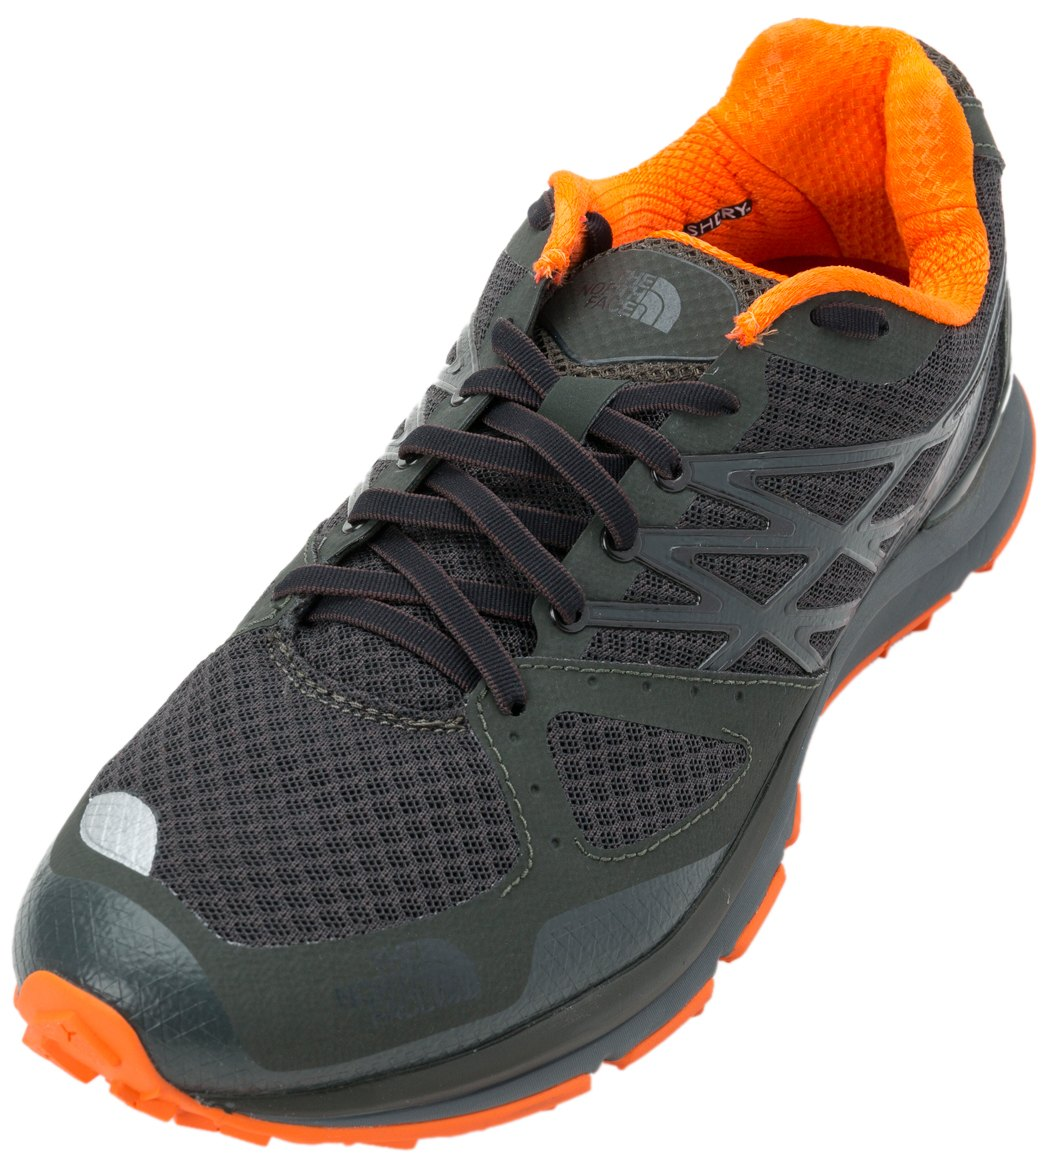 7a10c0c0e The North Face Men's Ultra Cardiac Trail Running Shoes